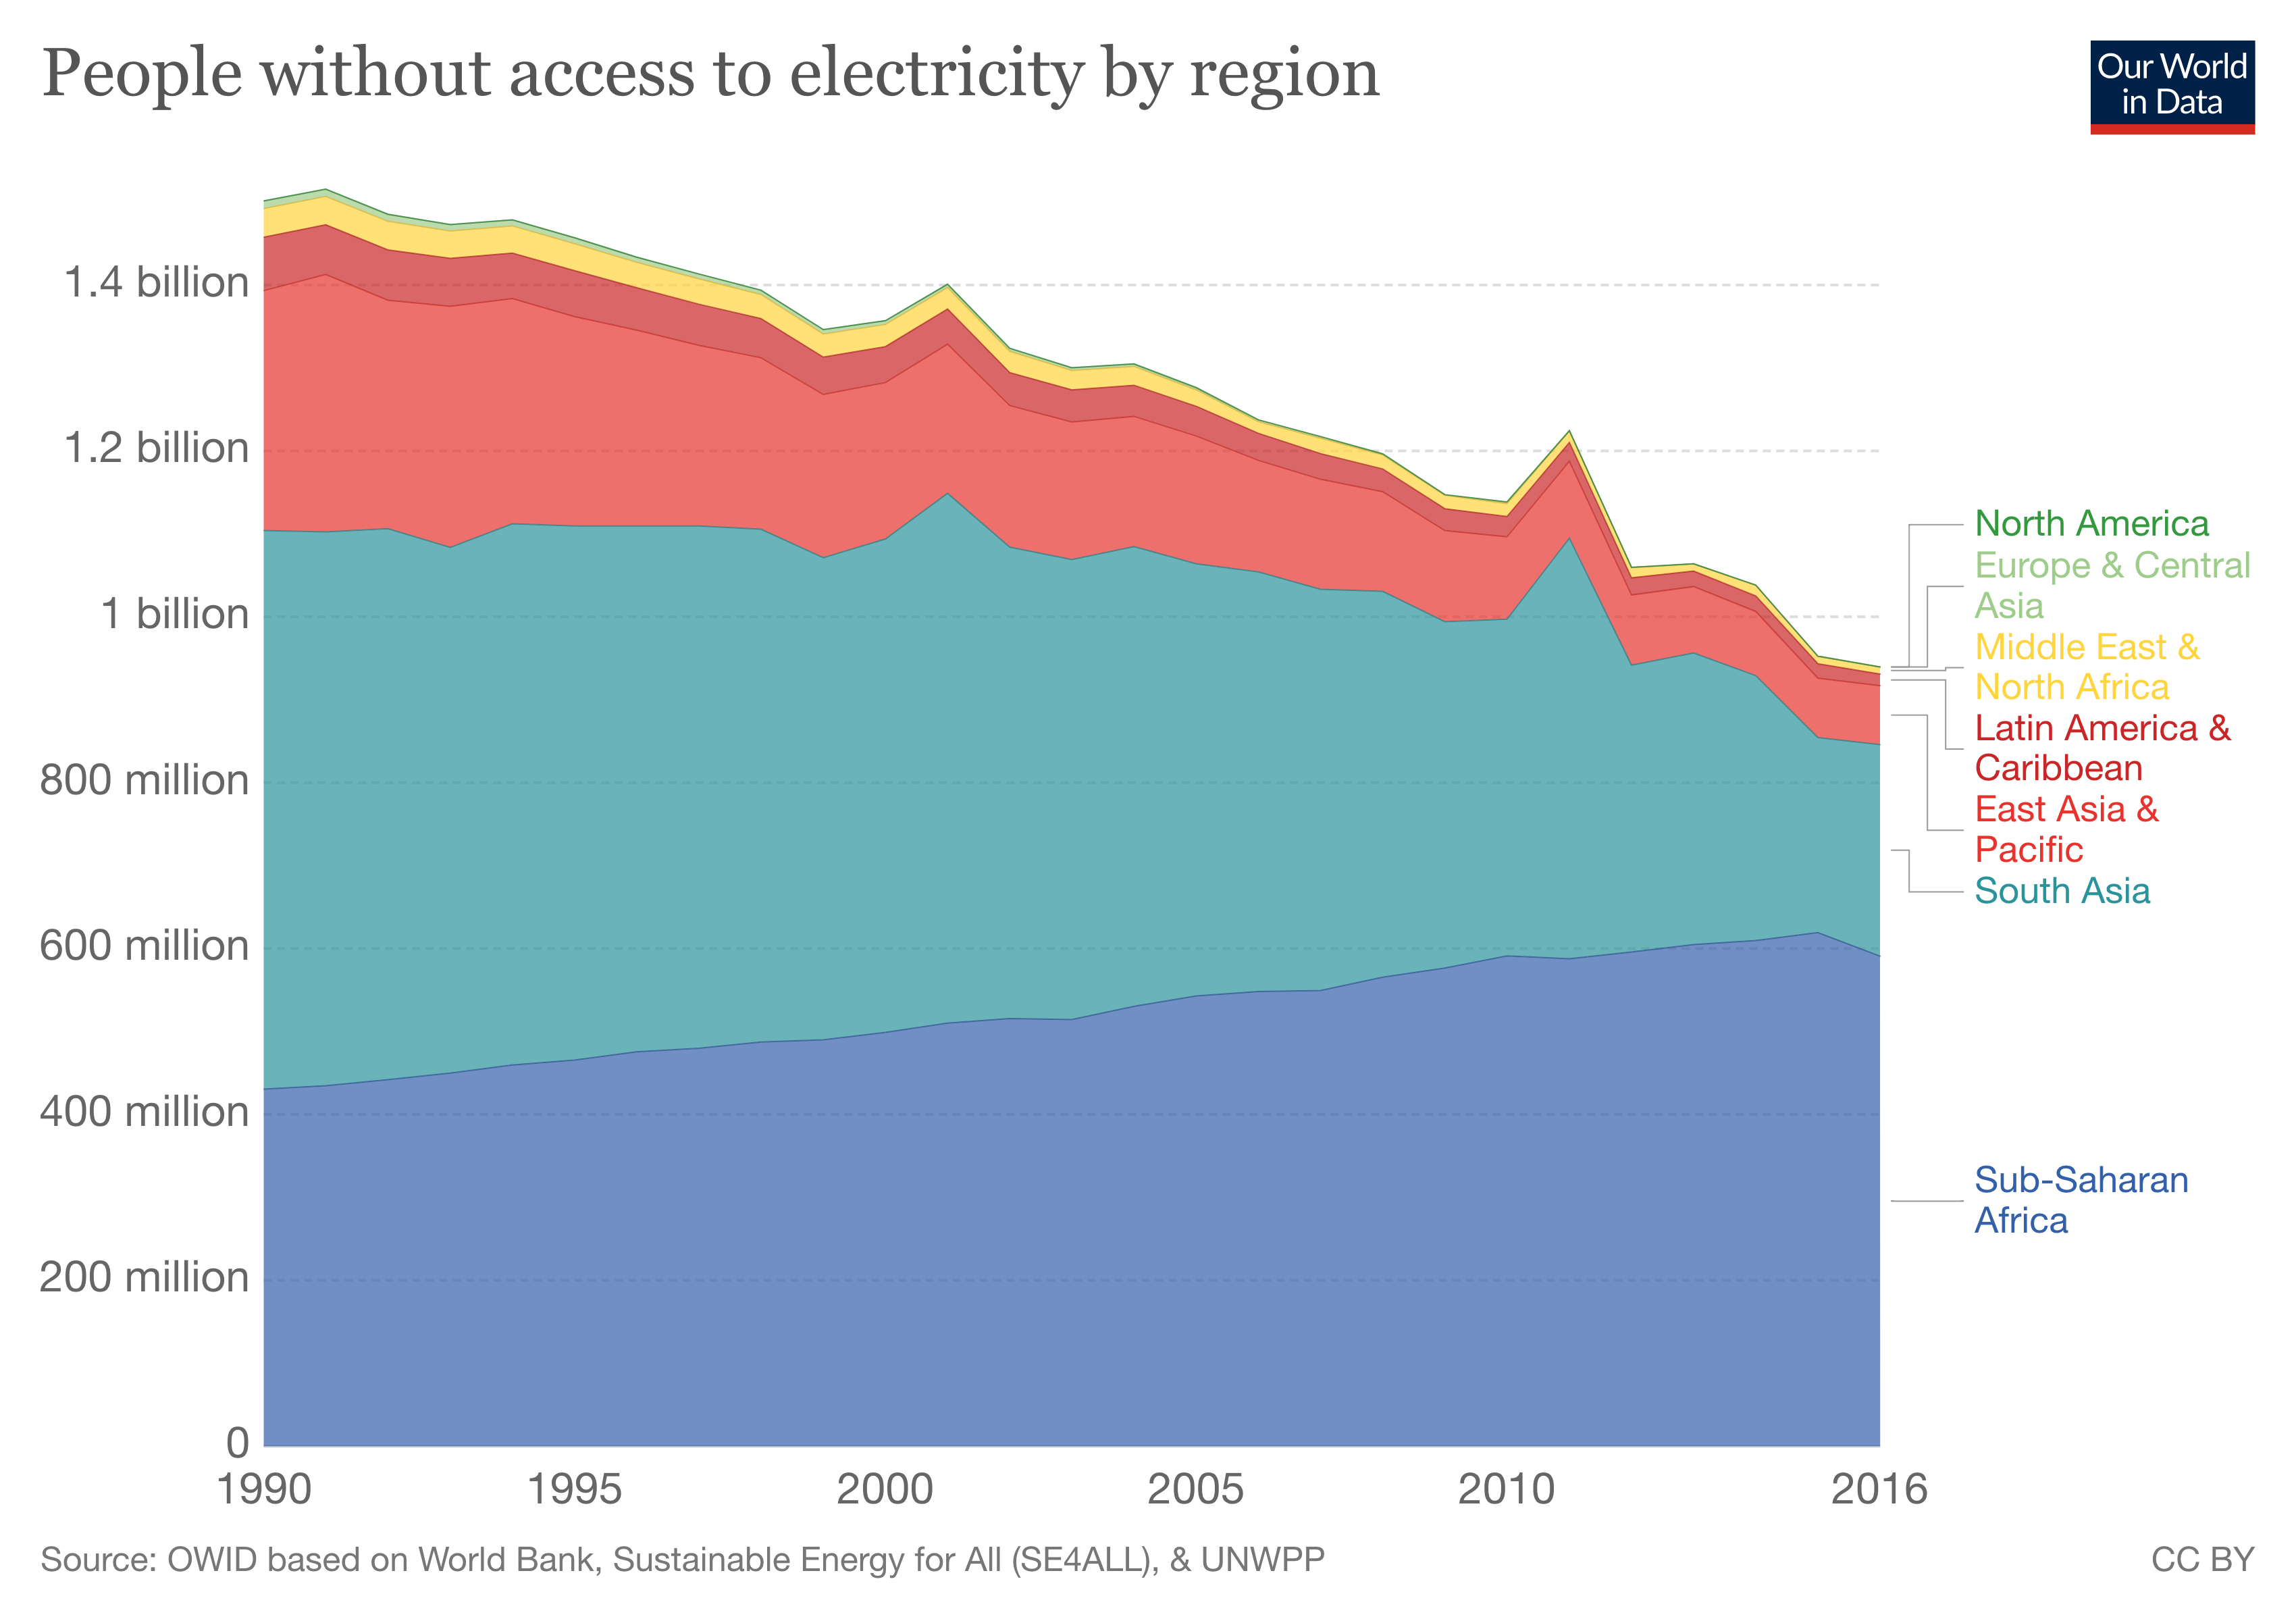 Most of the world's population who lack of access to electricity live in Sub-Saharan Africa